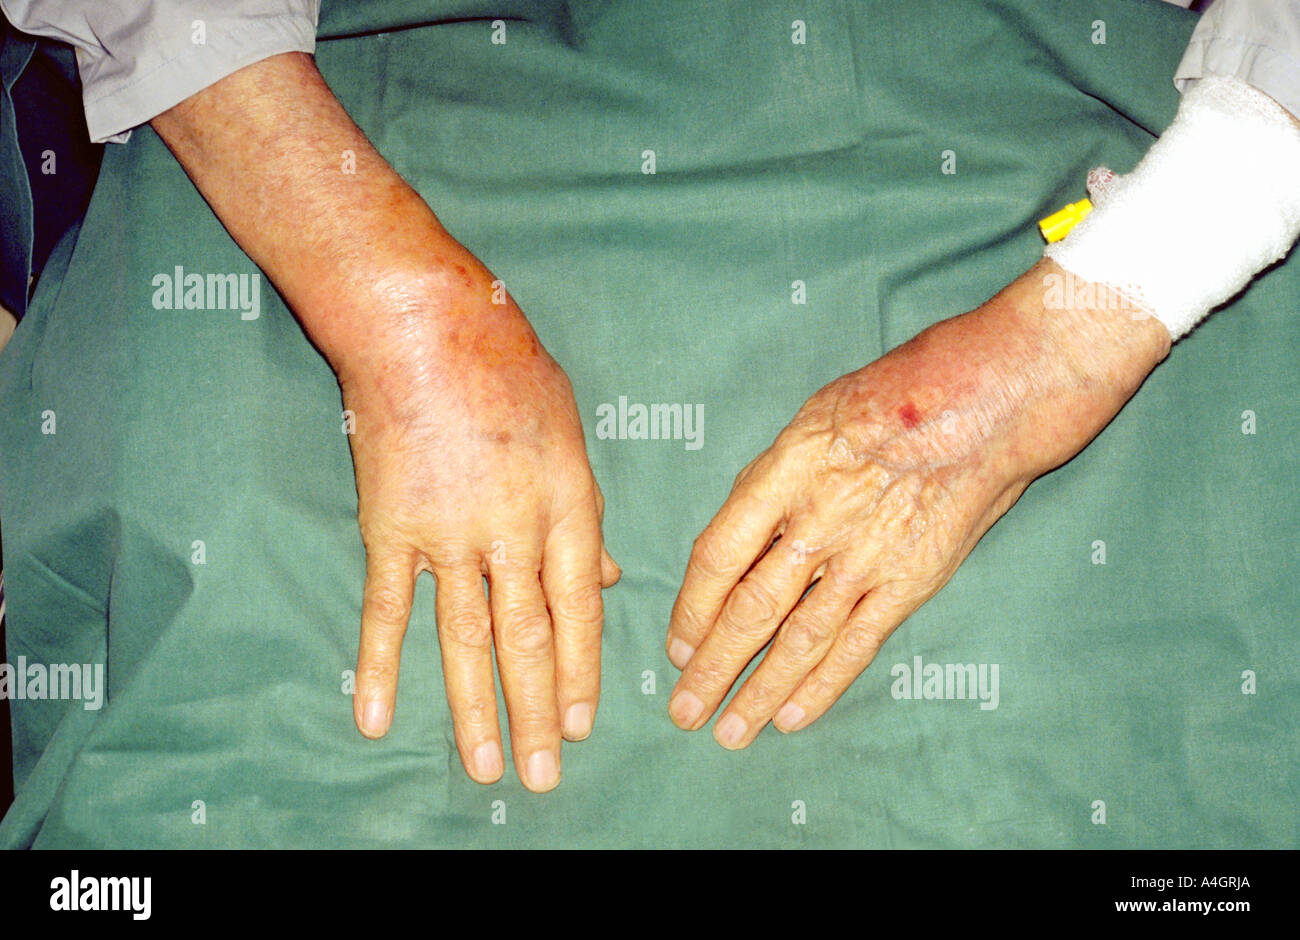 Septic Arthritis High Resolution Stock Photography And Images Alamy